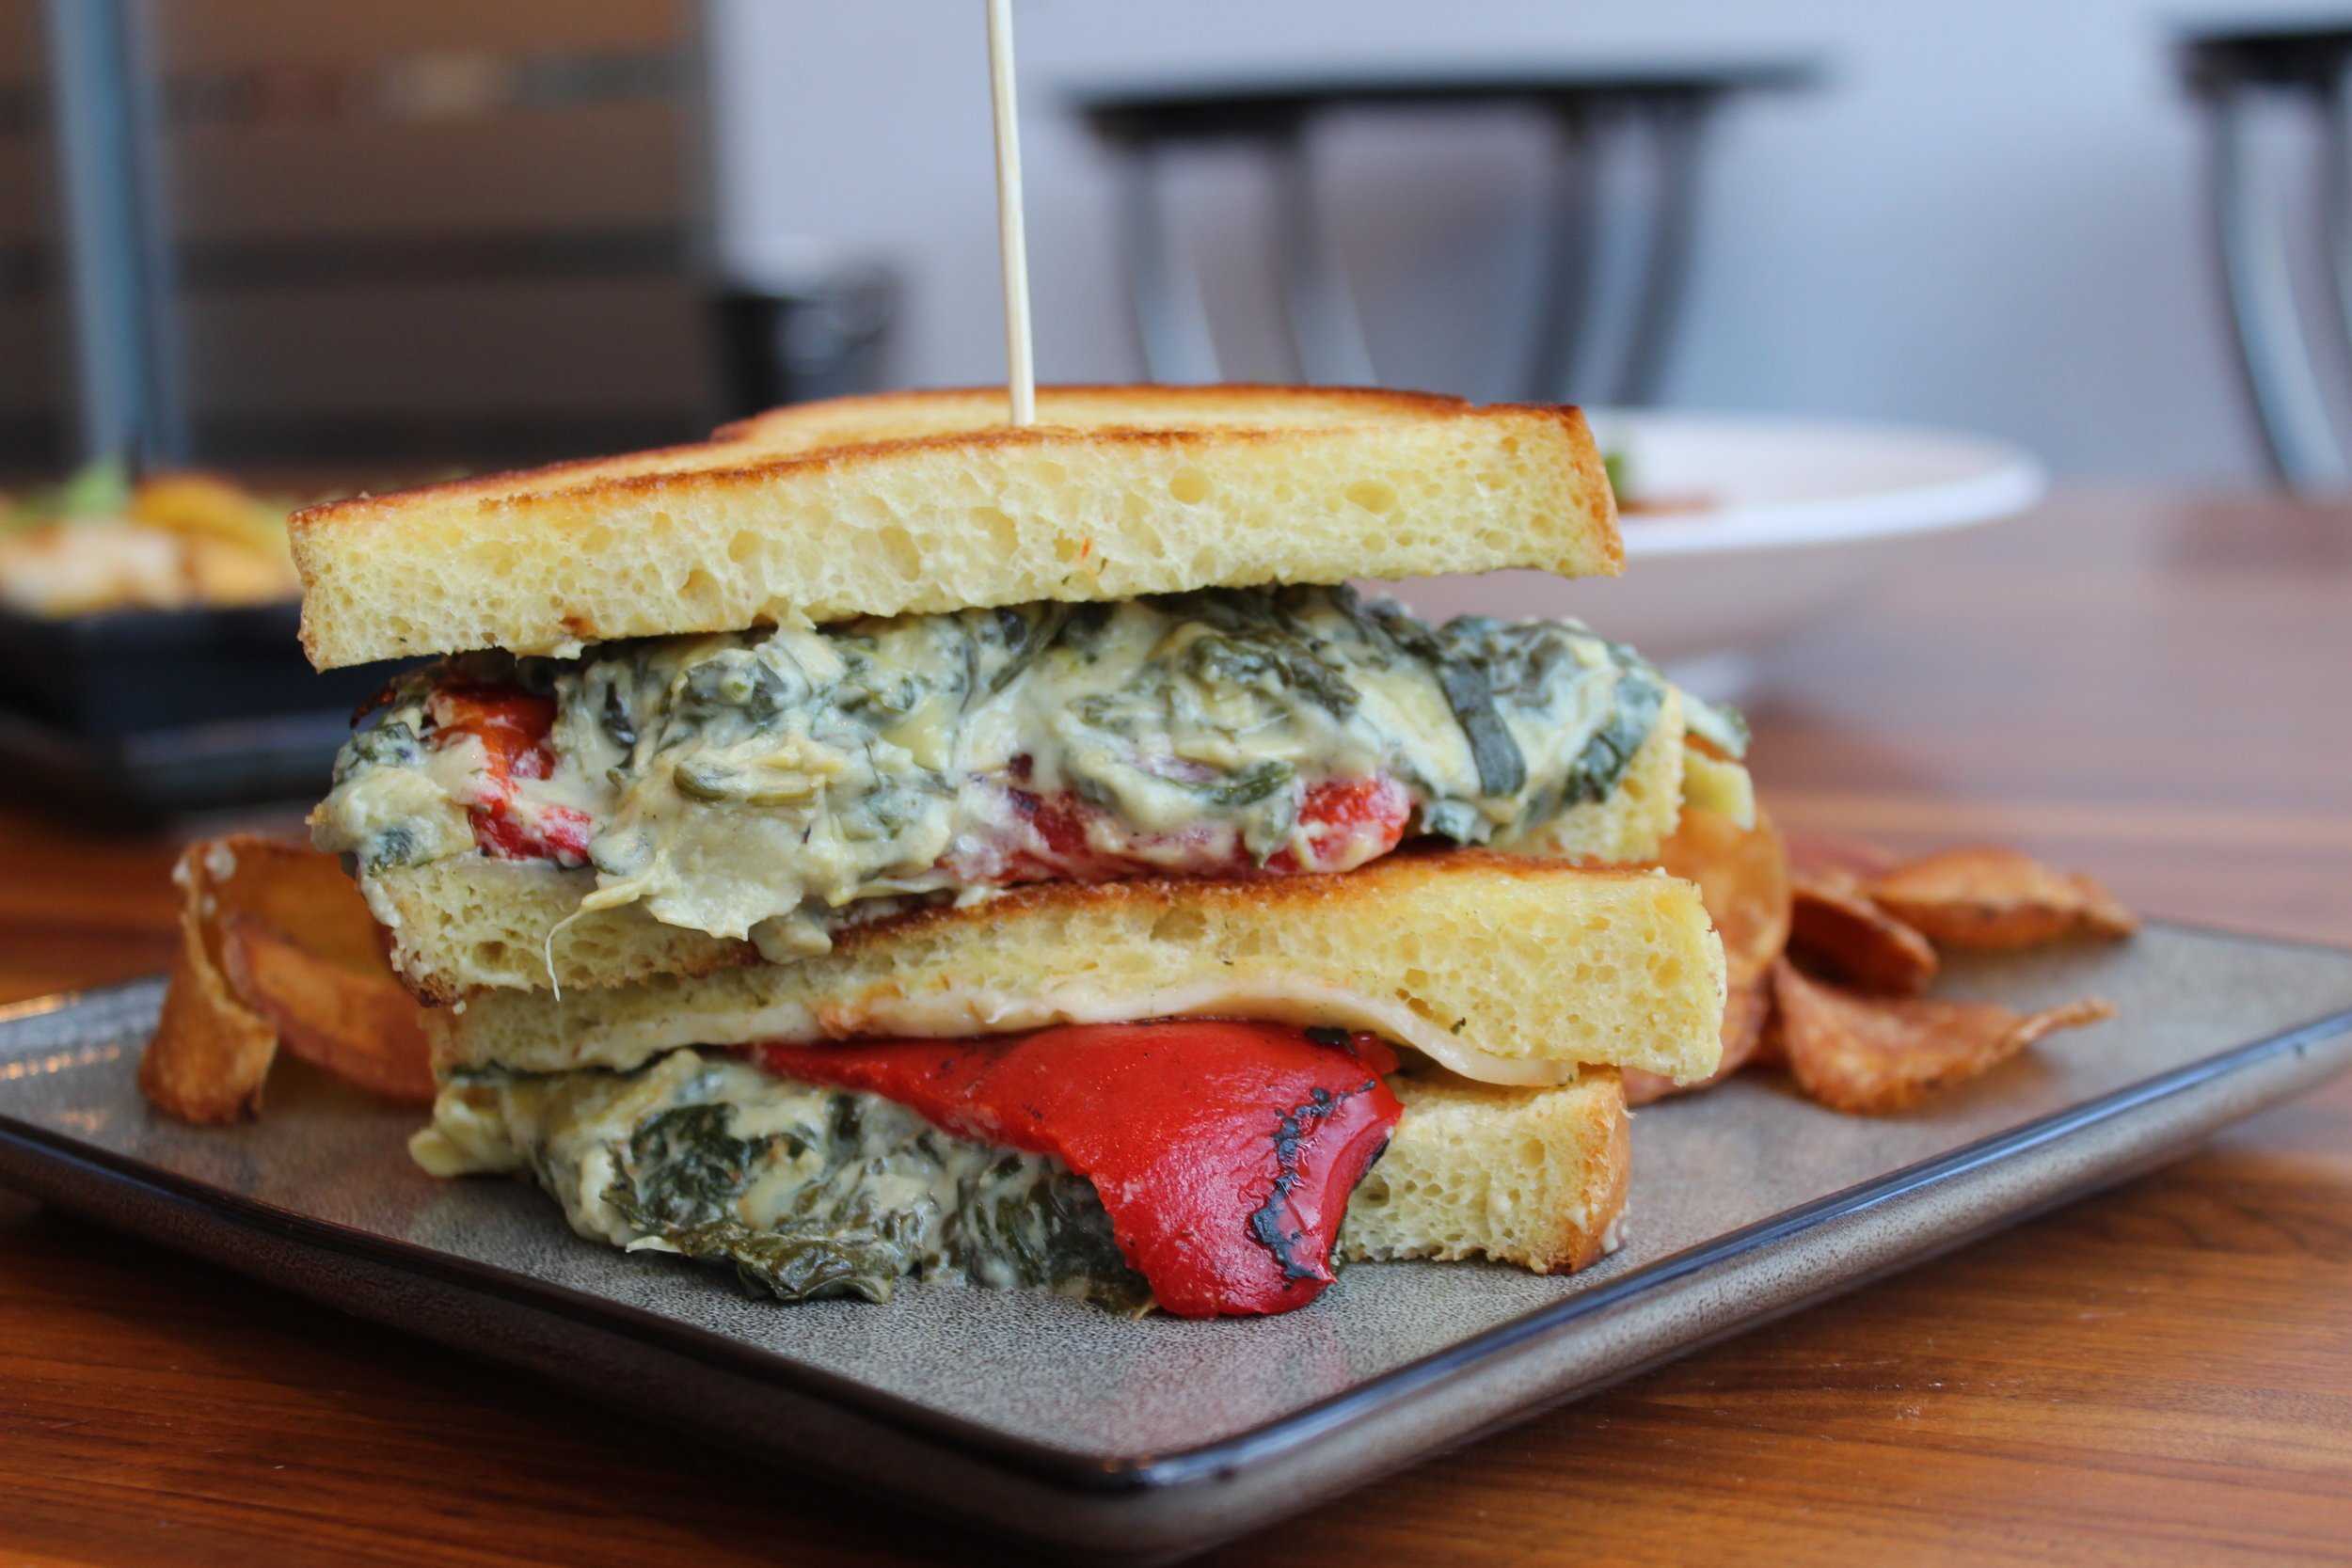 Spinach Artichoke Grilled Cheese, with spinach, artichoke, Boursin cheese, roasted red pepper, on sliced brioche